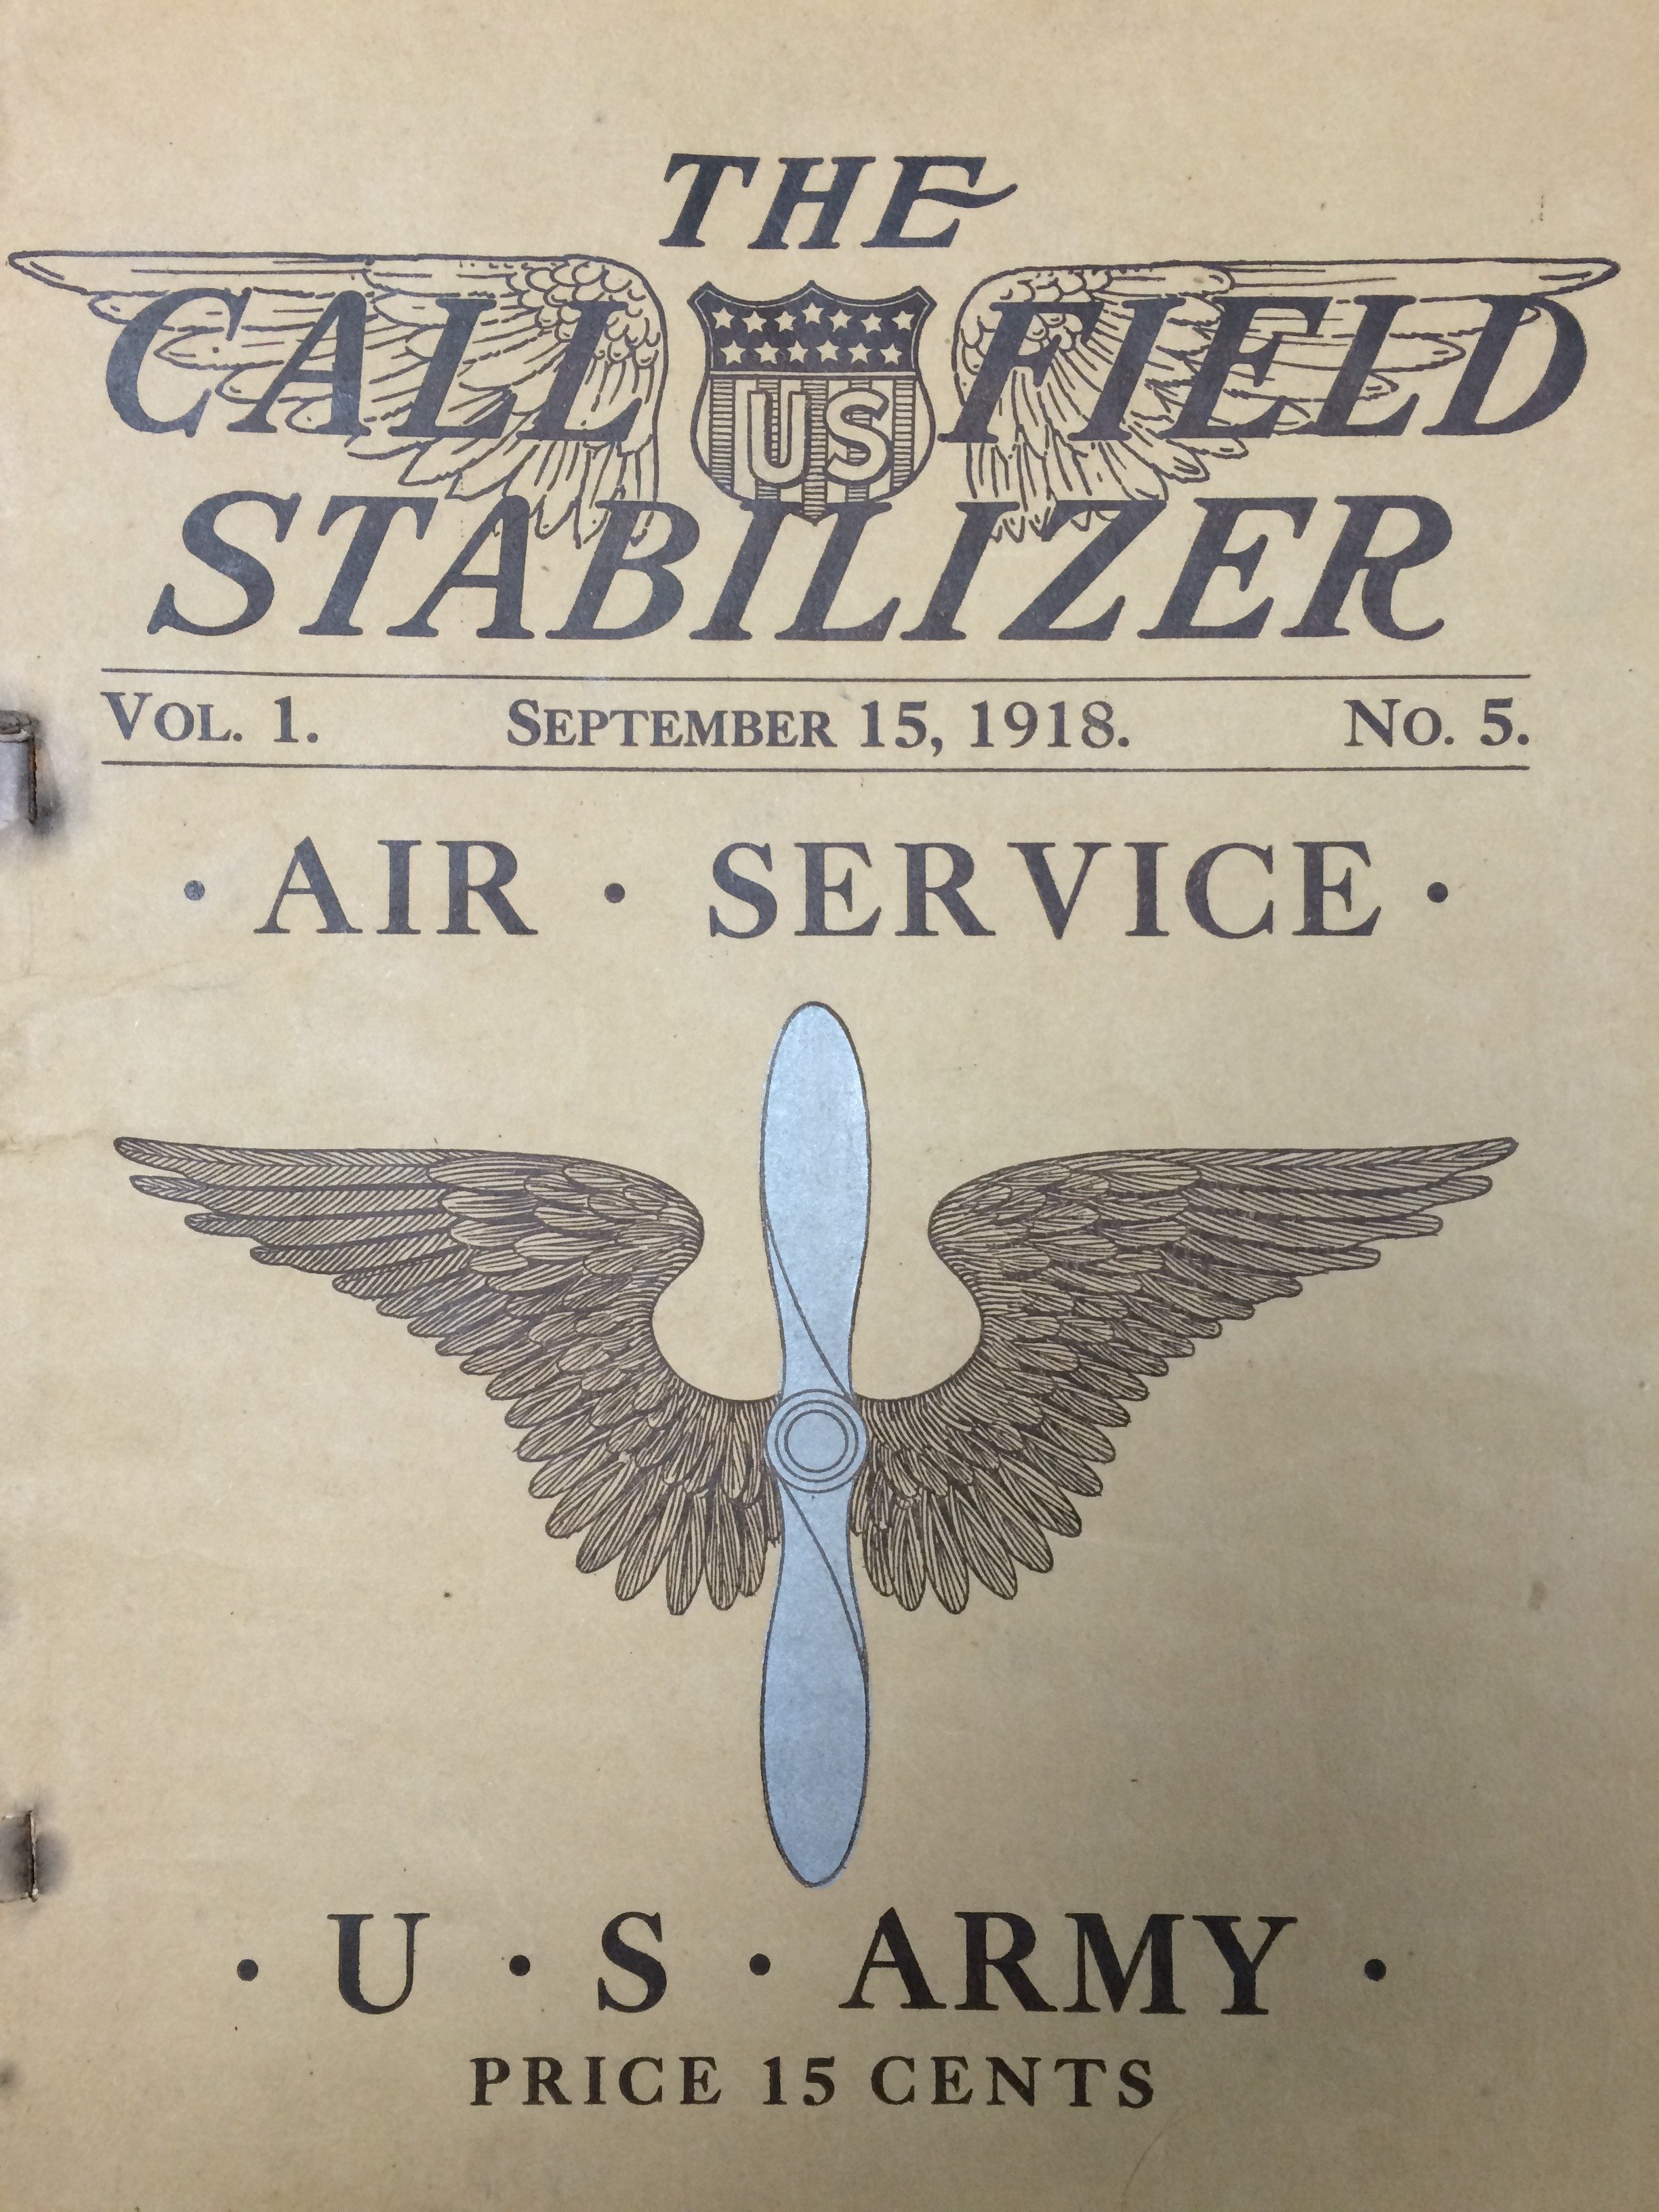 Image 1 Sept 1918 Call Field Stabilizer